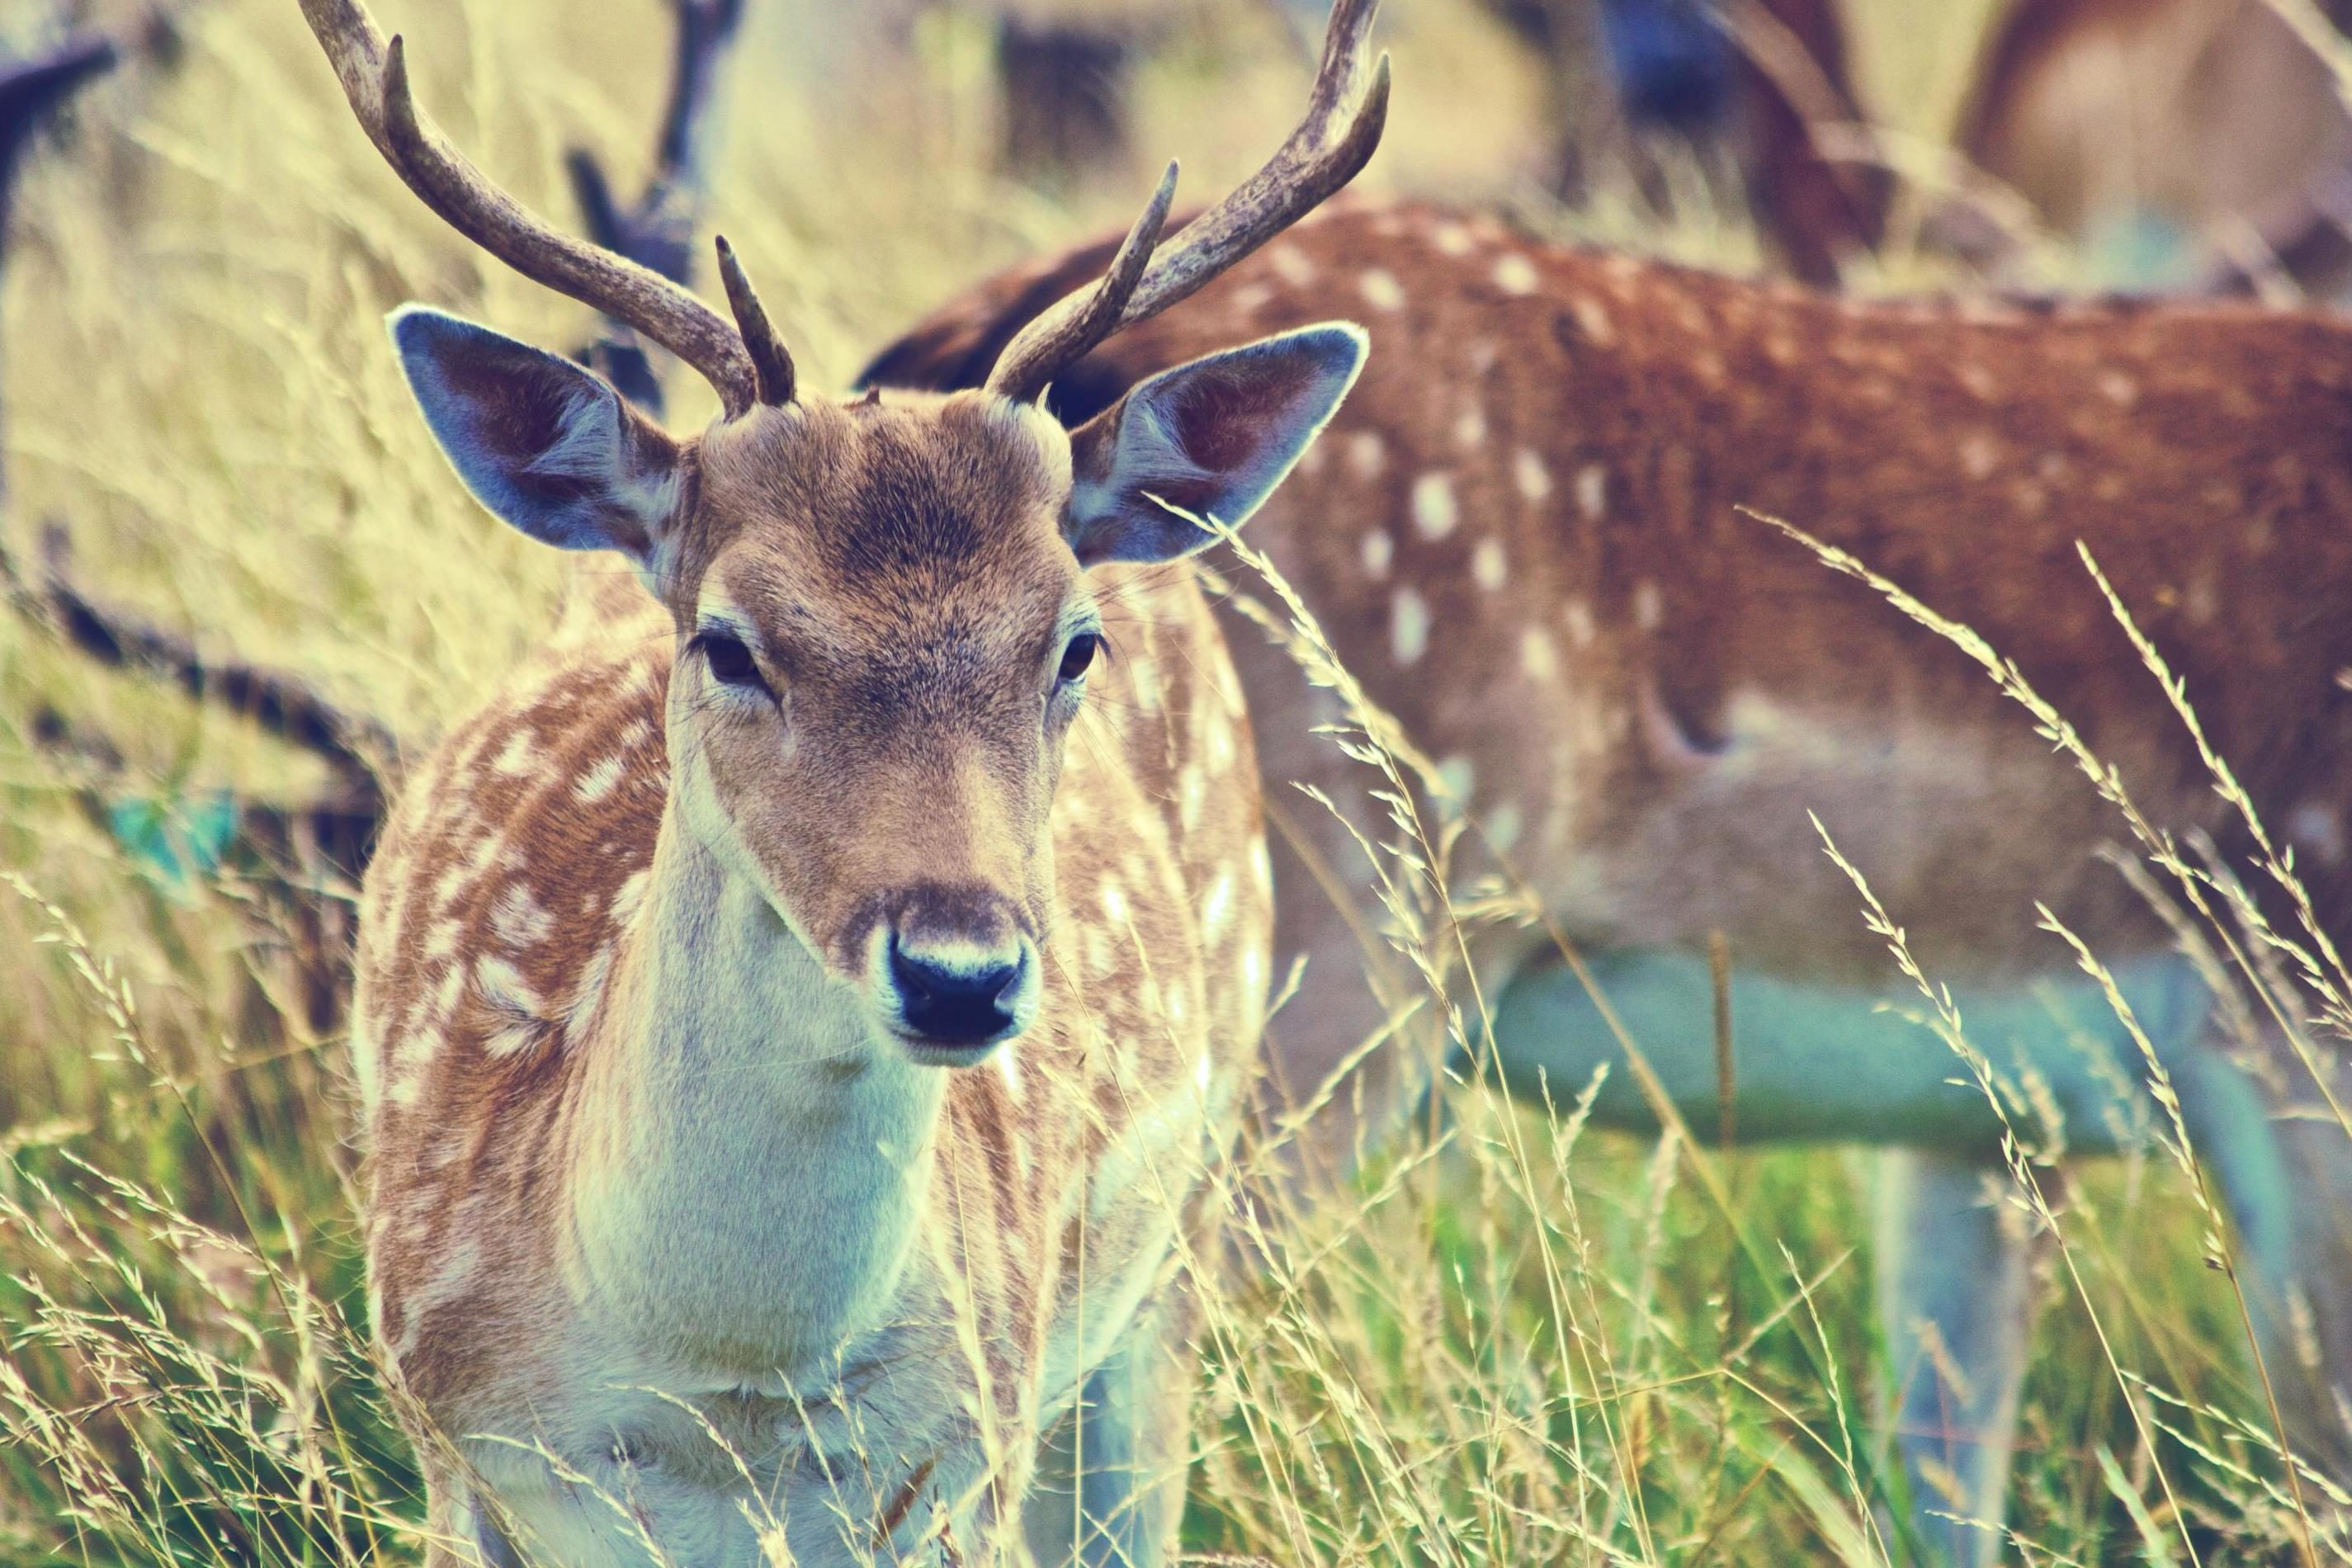 Free picture: deer, wildlife, nature, grass, animal, wild, antlers ...